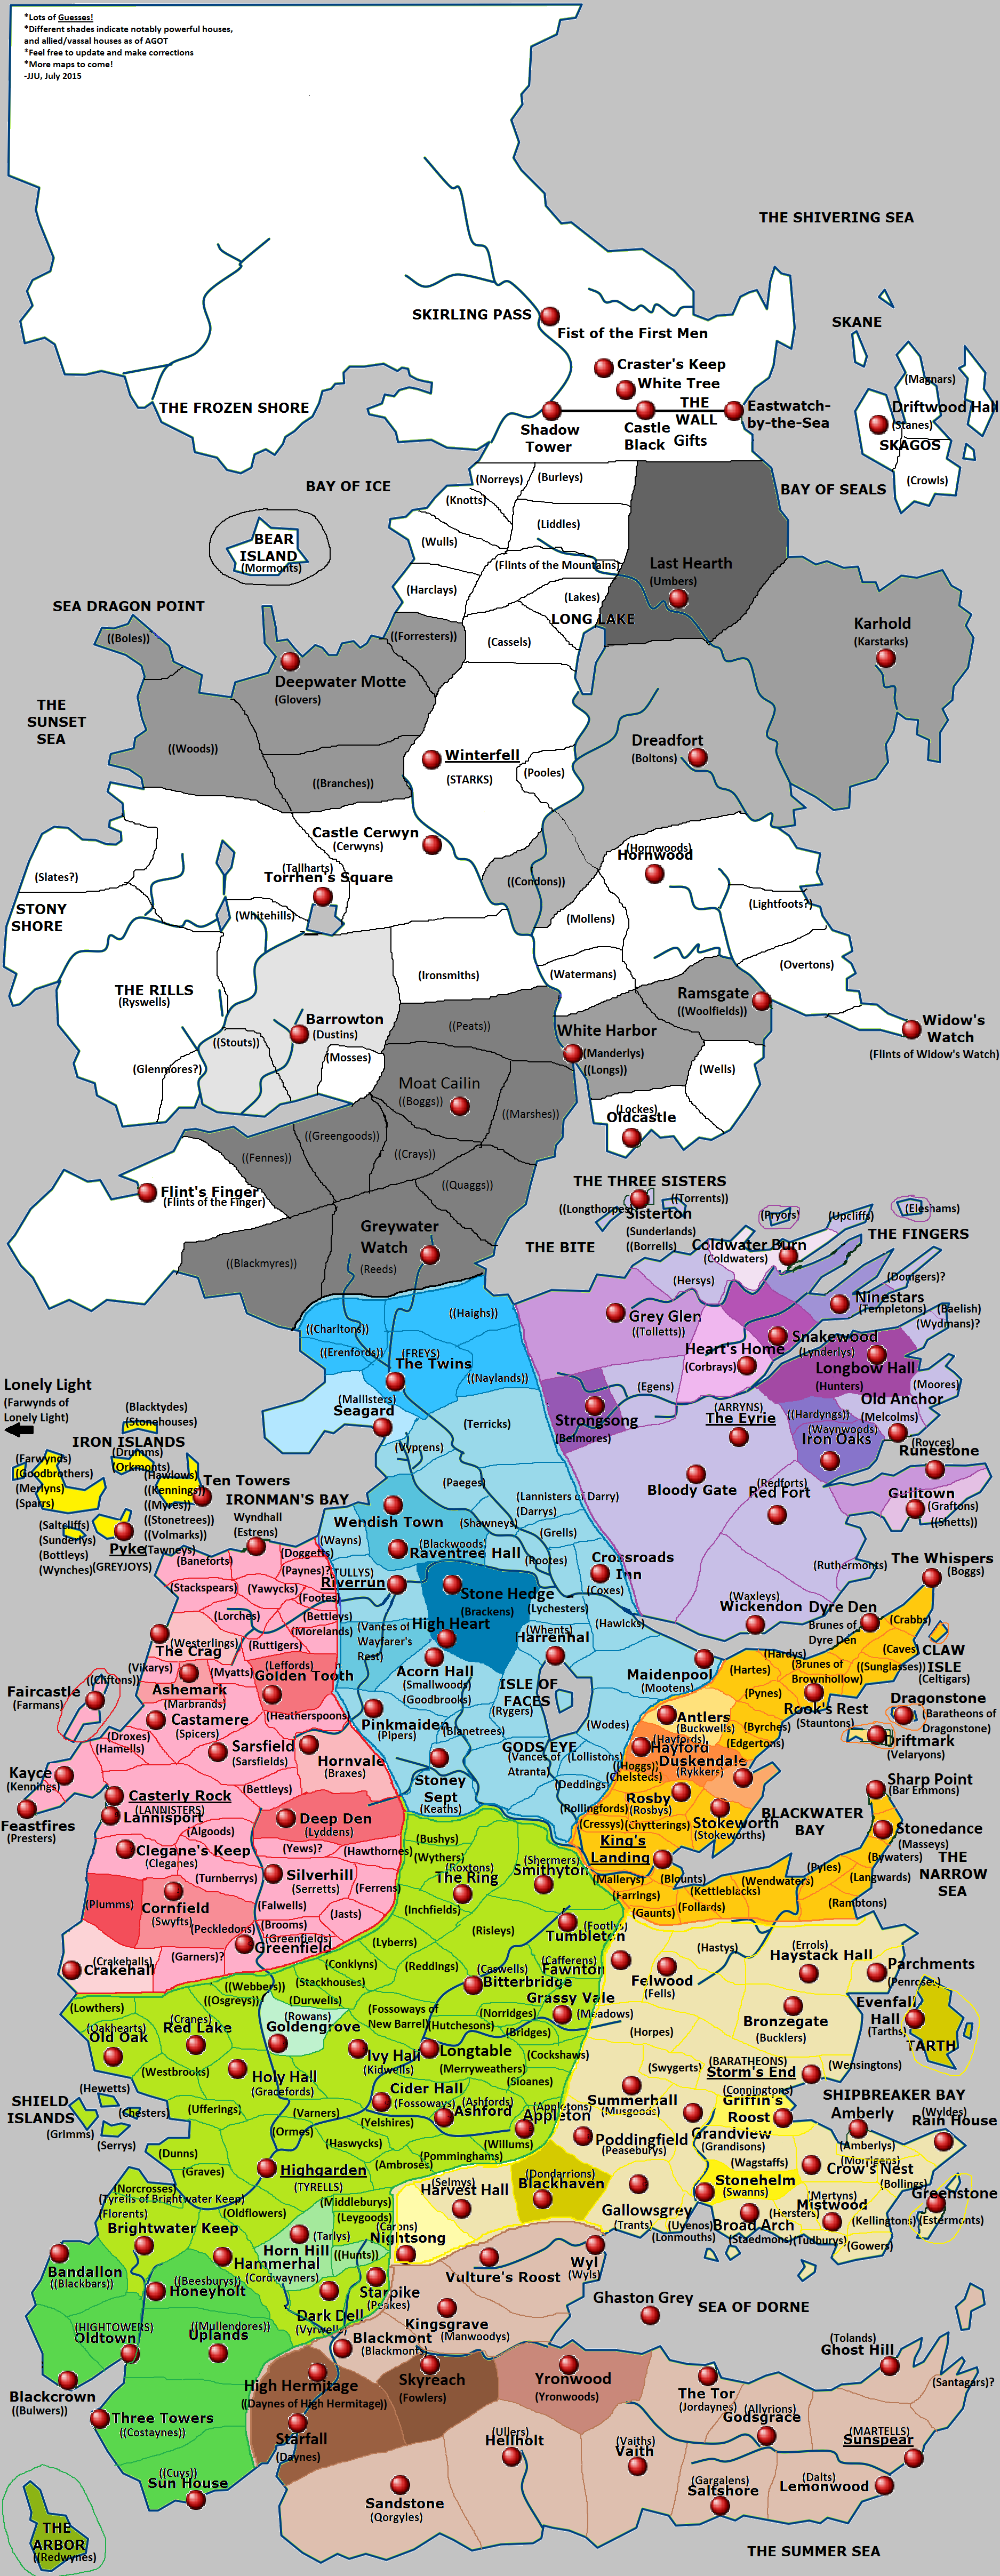 betagallon.files.wordpress.com 2015 08 map-of-westeros-game-of-thrones.png